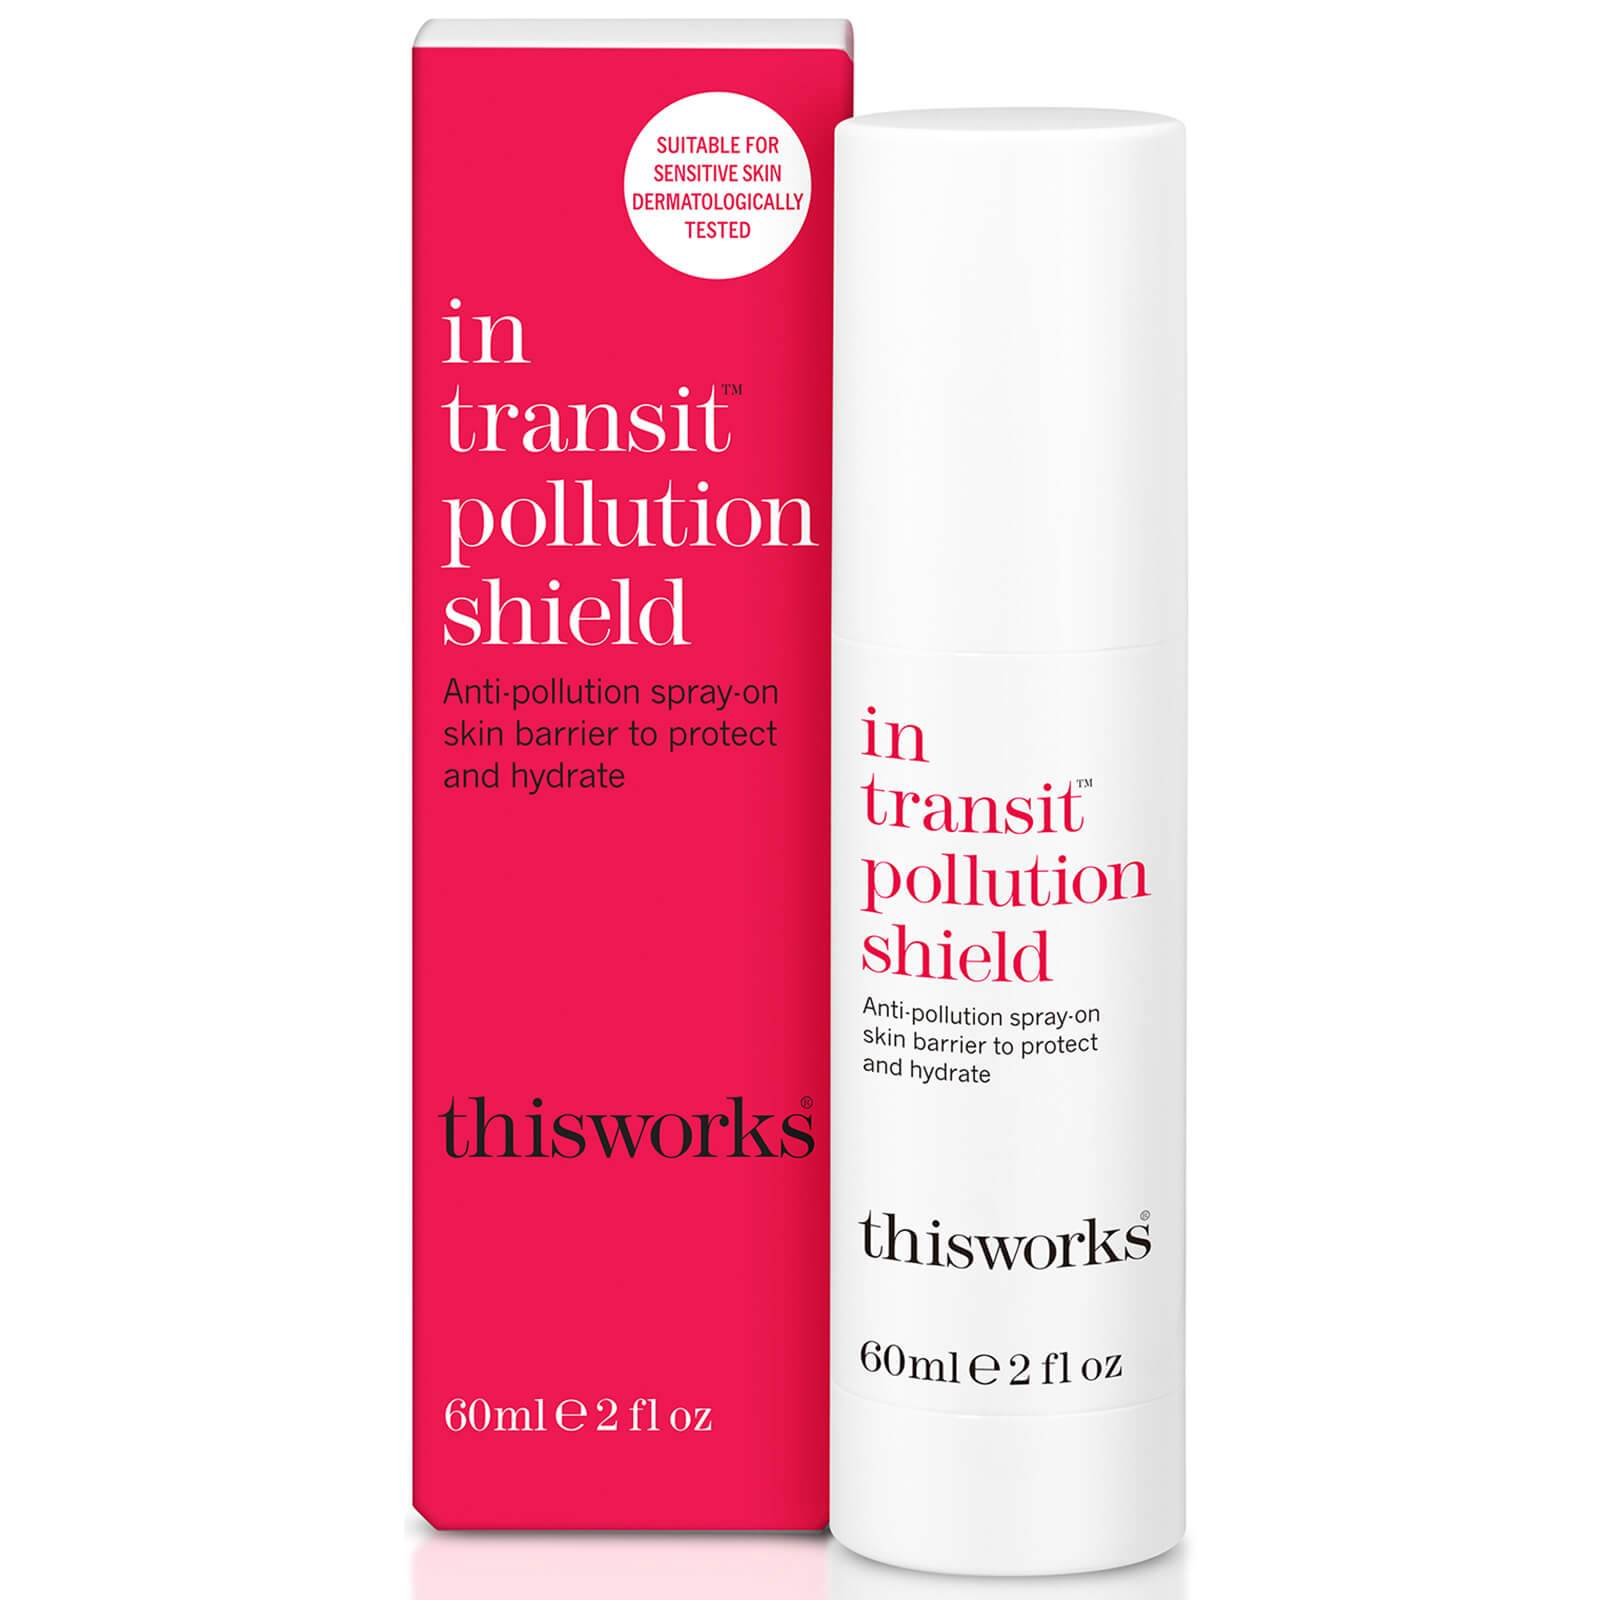 this works Spray Anti-Pollution Pollution Shield In Transit™ this works 60ml